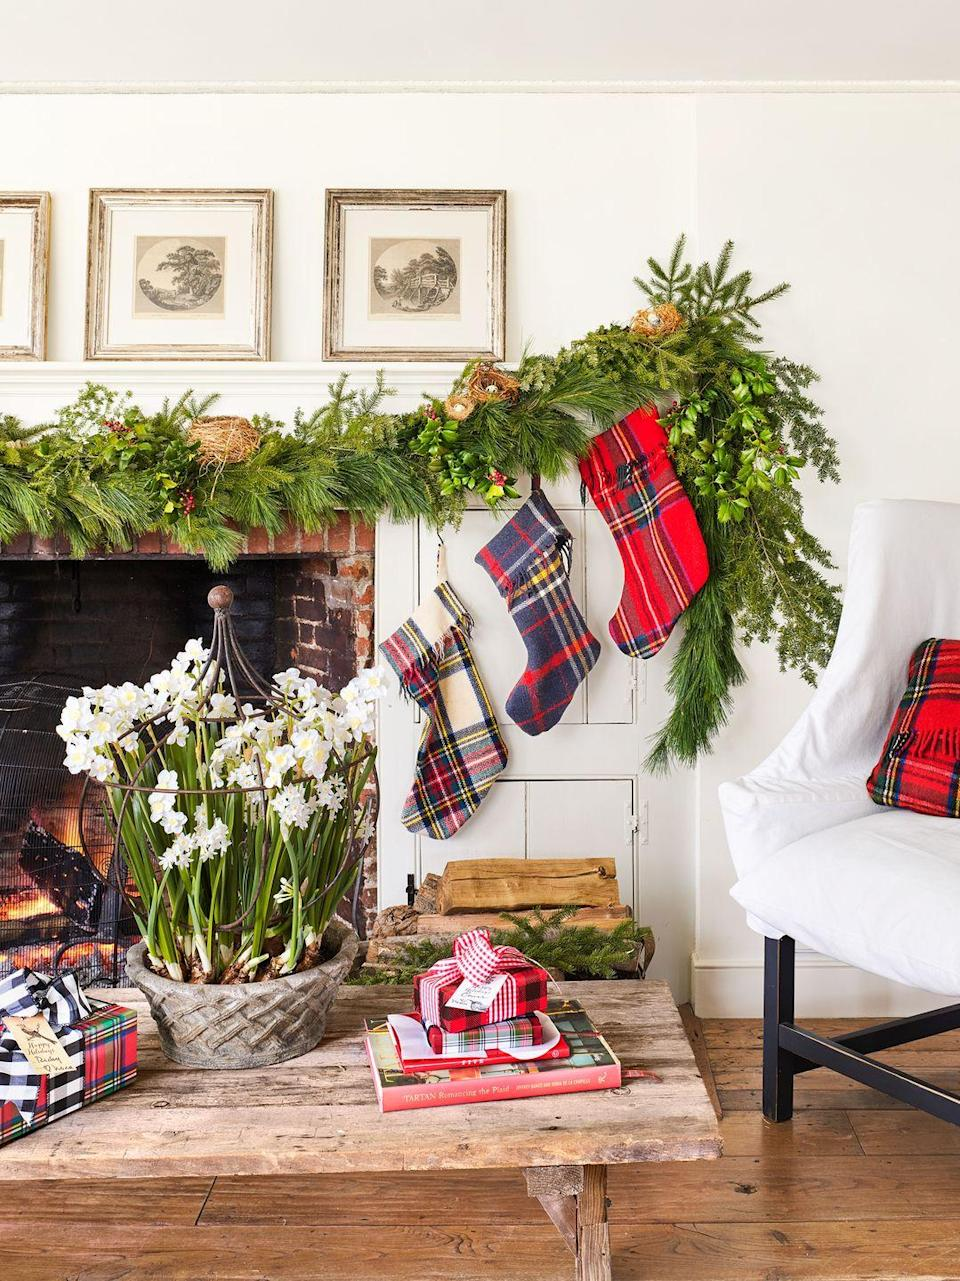 "<p>In just ten minutes, you can transform ordinary pillows into festive couch decor. All you need is a sewing machine and an inexpensive fleece blanket. Get the tutorial at <a href=""https://www.happinessishomemade.net/buffalo-check-plaid-pillows-from-a-3-target-blanket/"" rel=""nofollow noopener"" target=""_blank"" data-ylk=""slk:Happiness is Homemade"" class=""link rapid-noclick-resp"">Happiness is Homemade</a>.</p>"